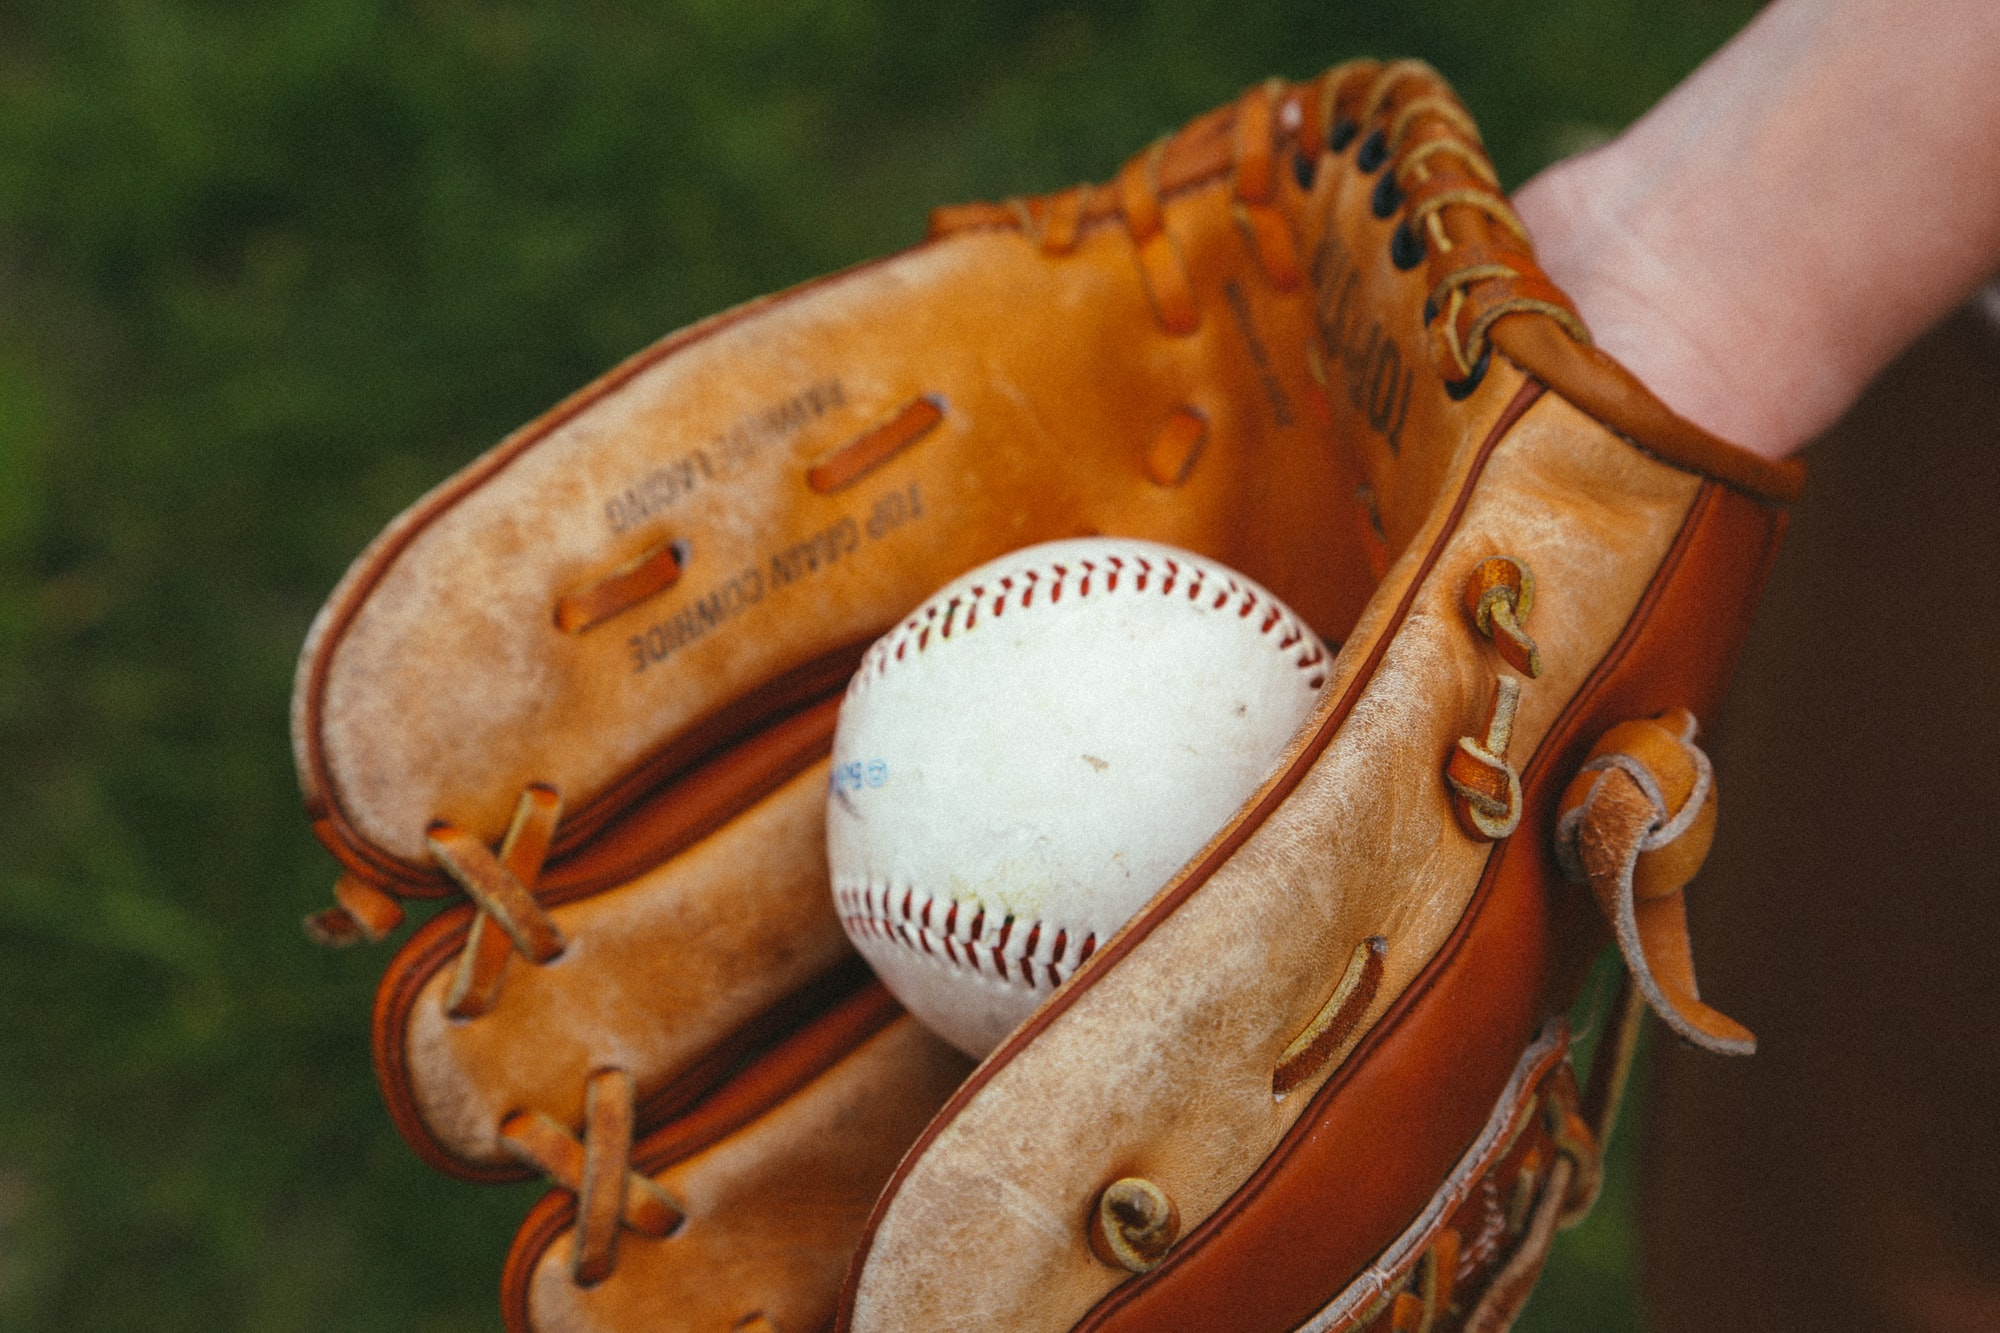 Baseball in hand and glove. Throw. Baseball equipment. Sport. The game. Advertising. Place for an inscription. The close plan.